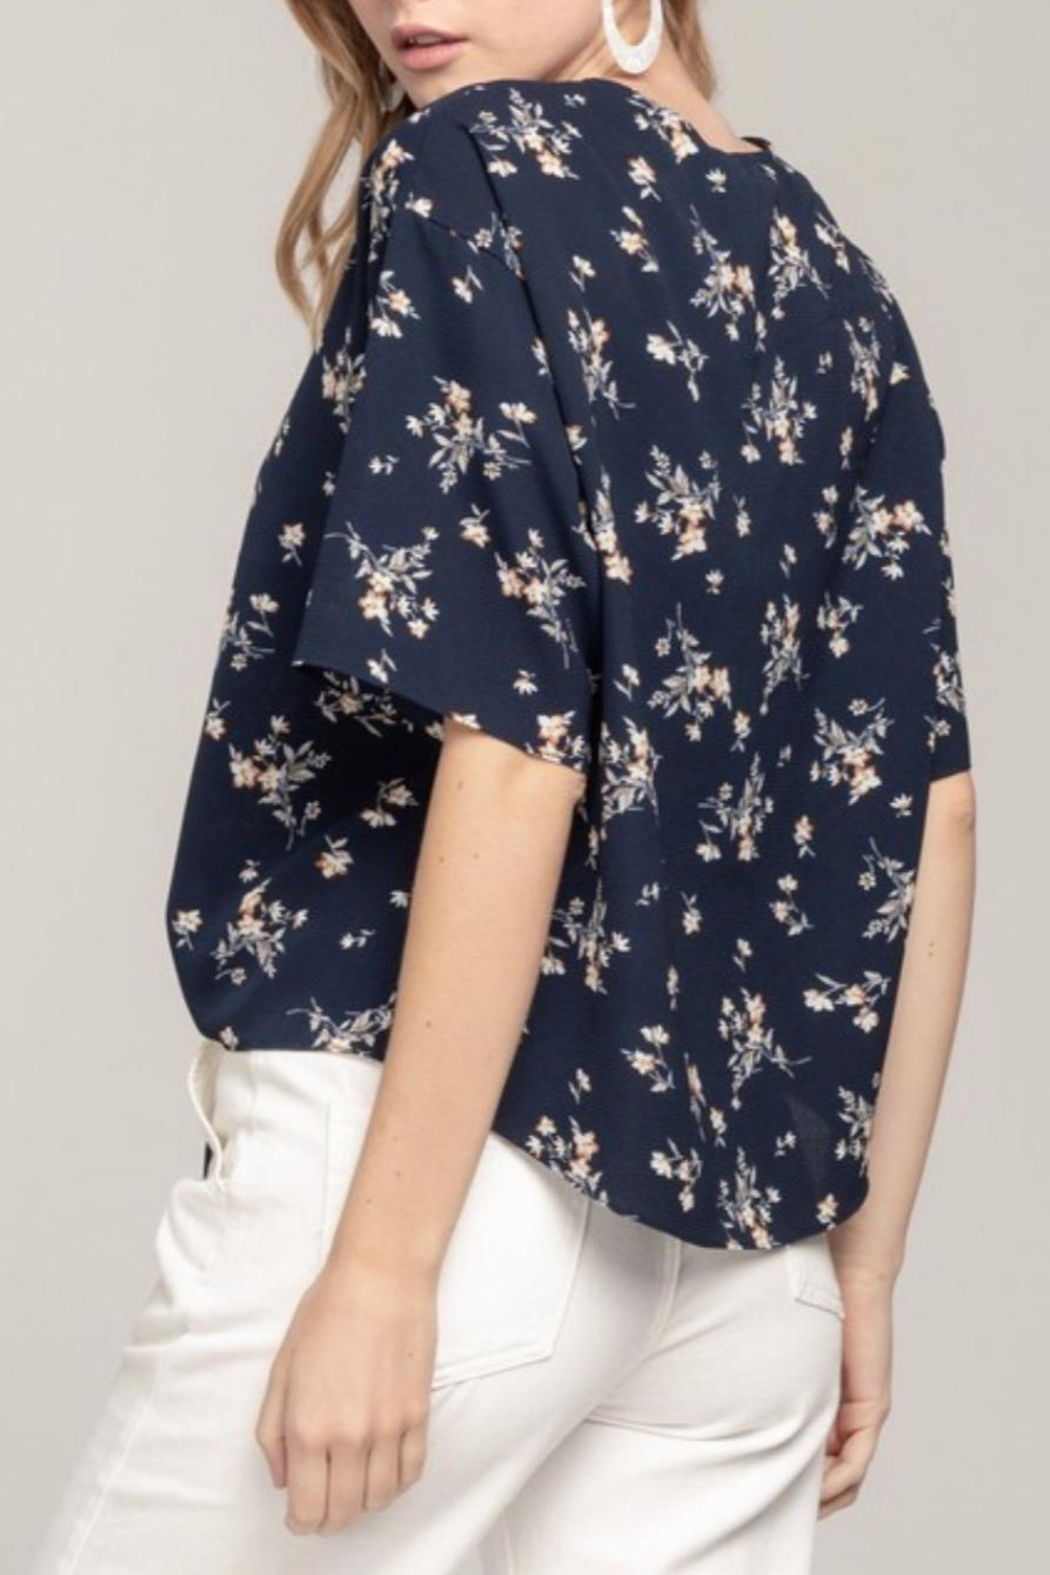 Everly Navy Floral Top - Back Cropped Image